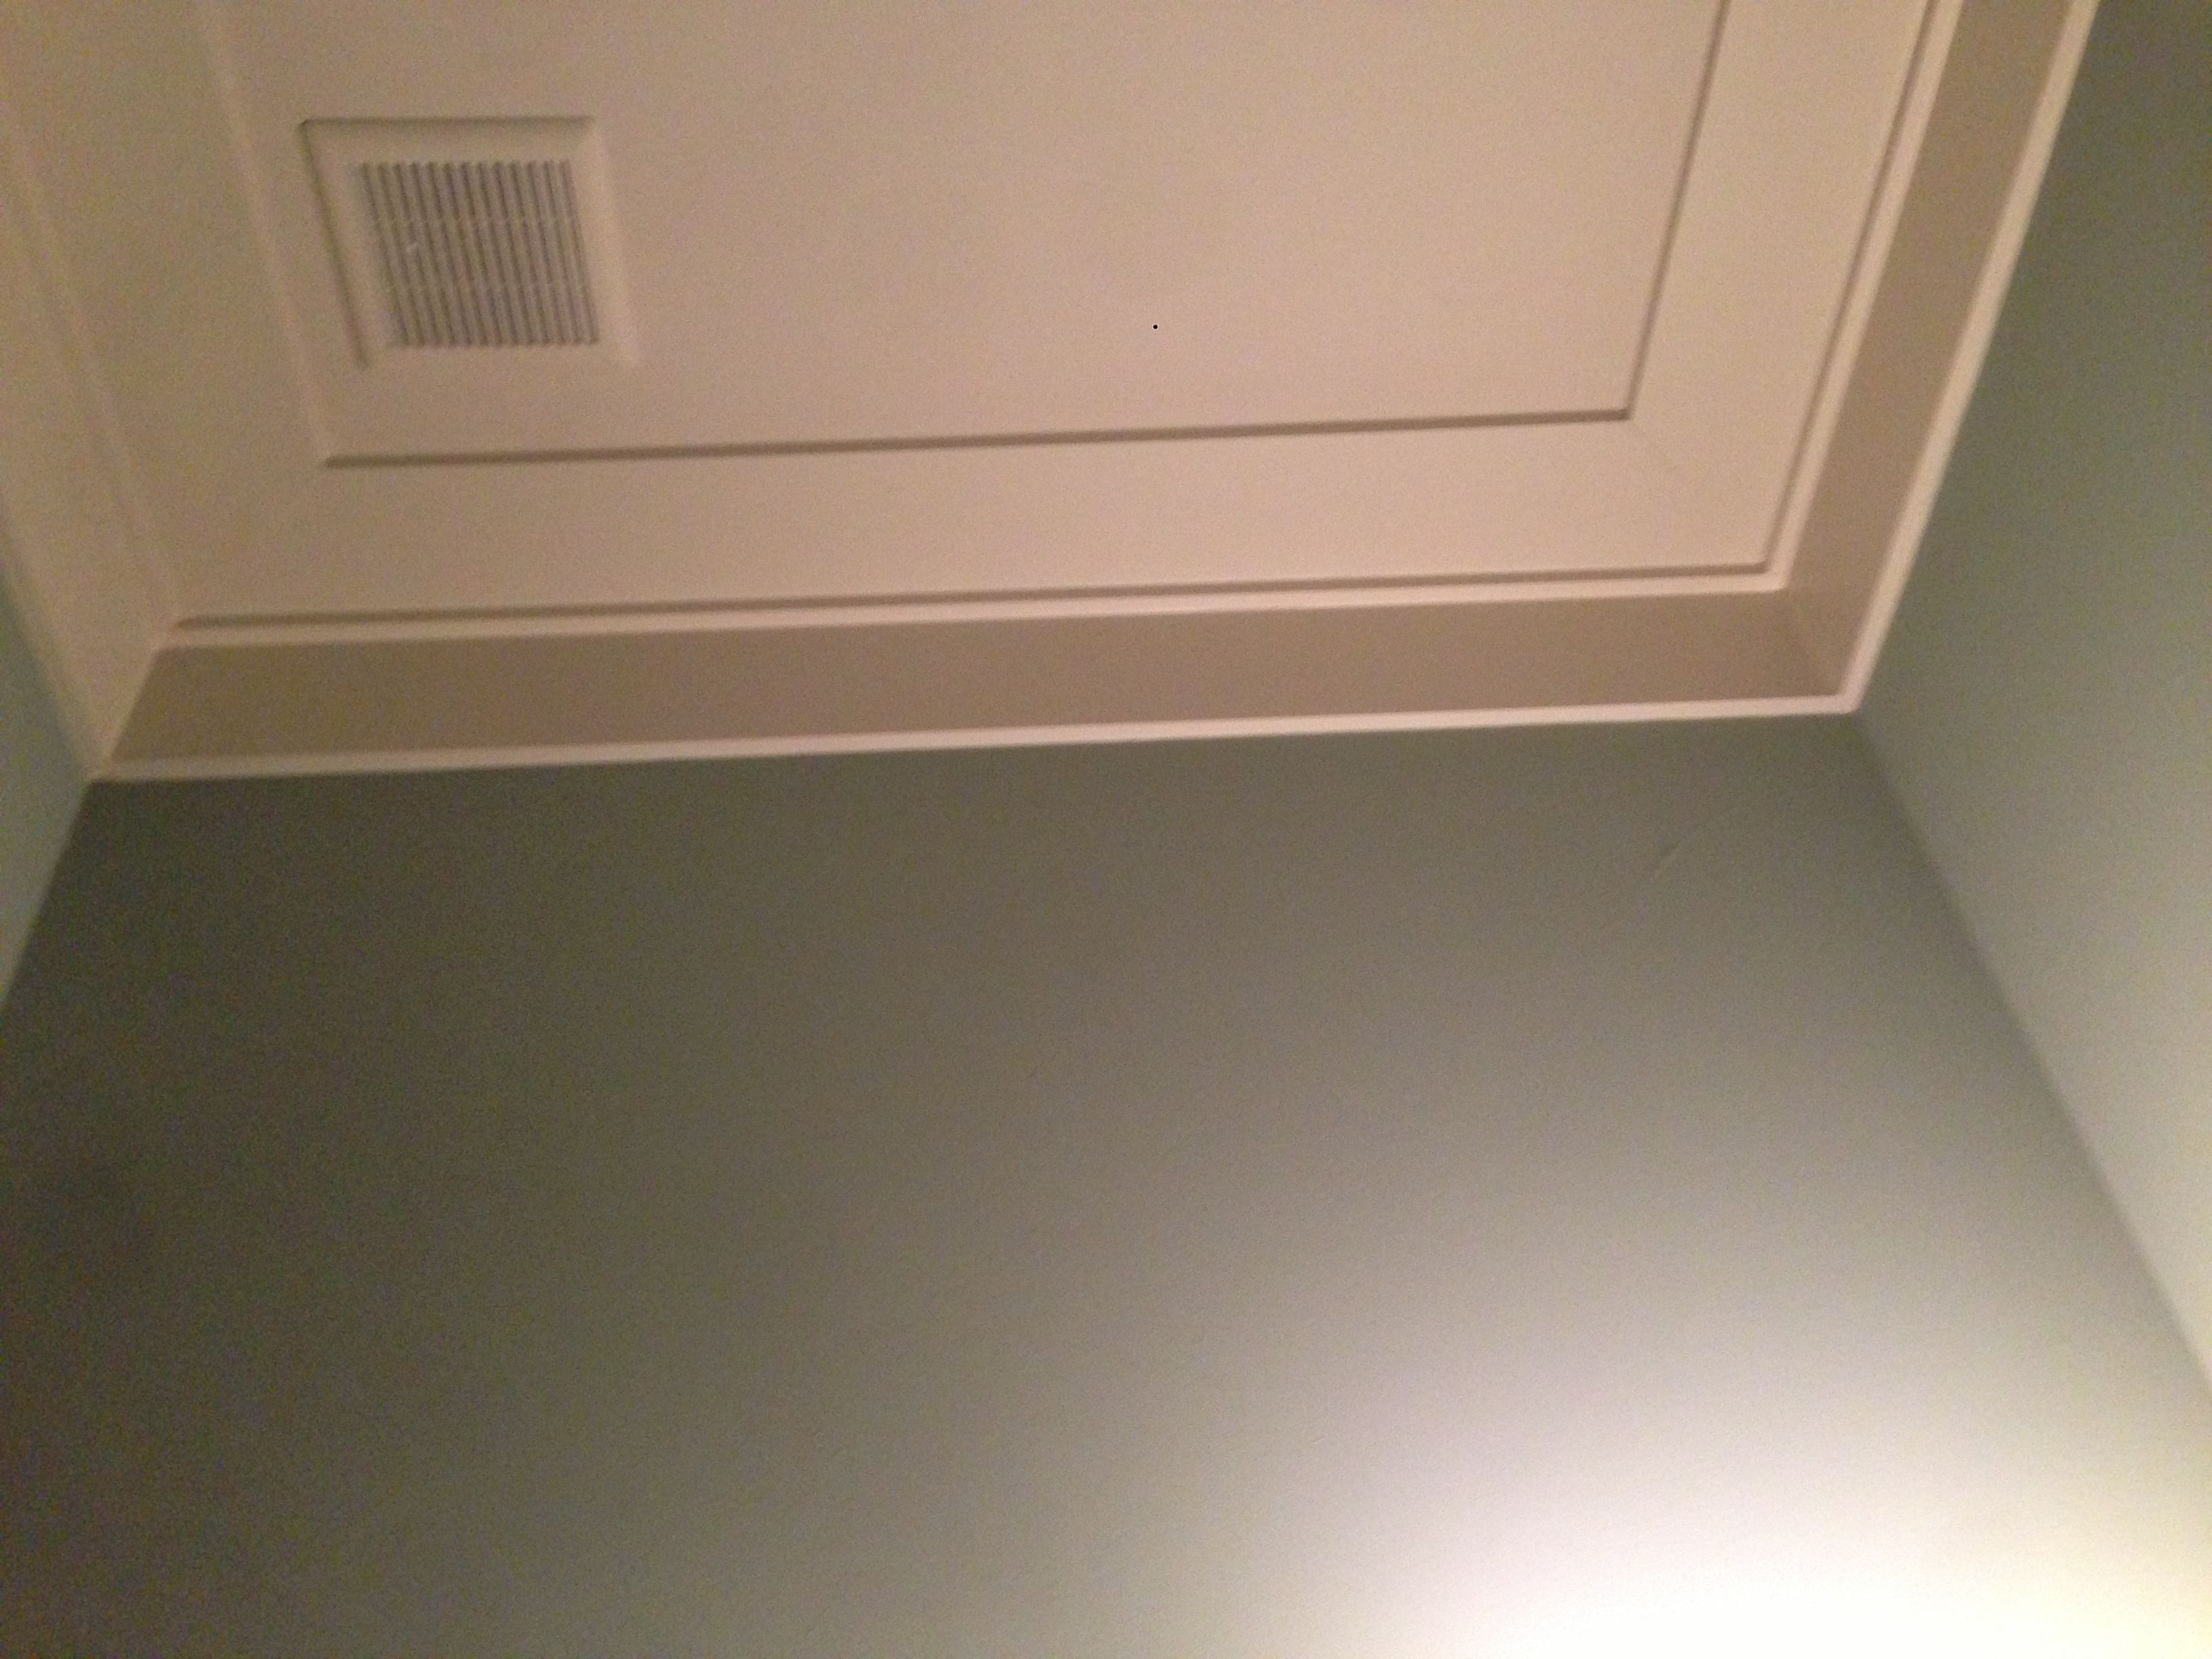 Ceiling trim makes celing look higher | ceilings ...